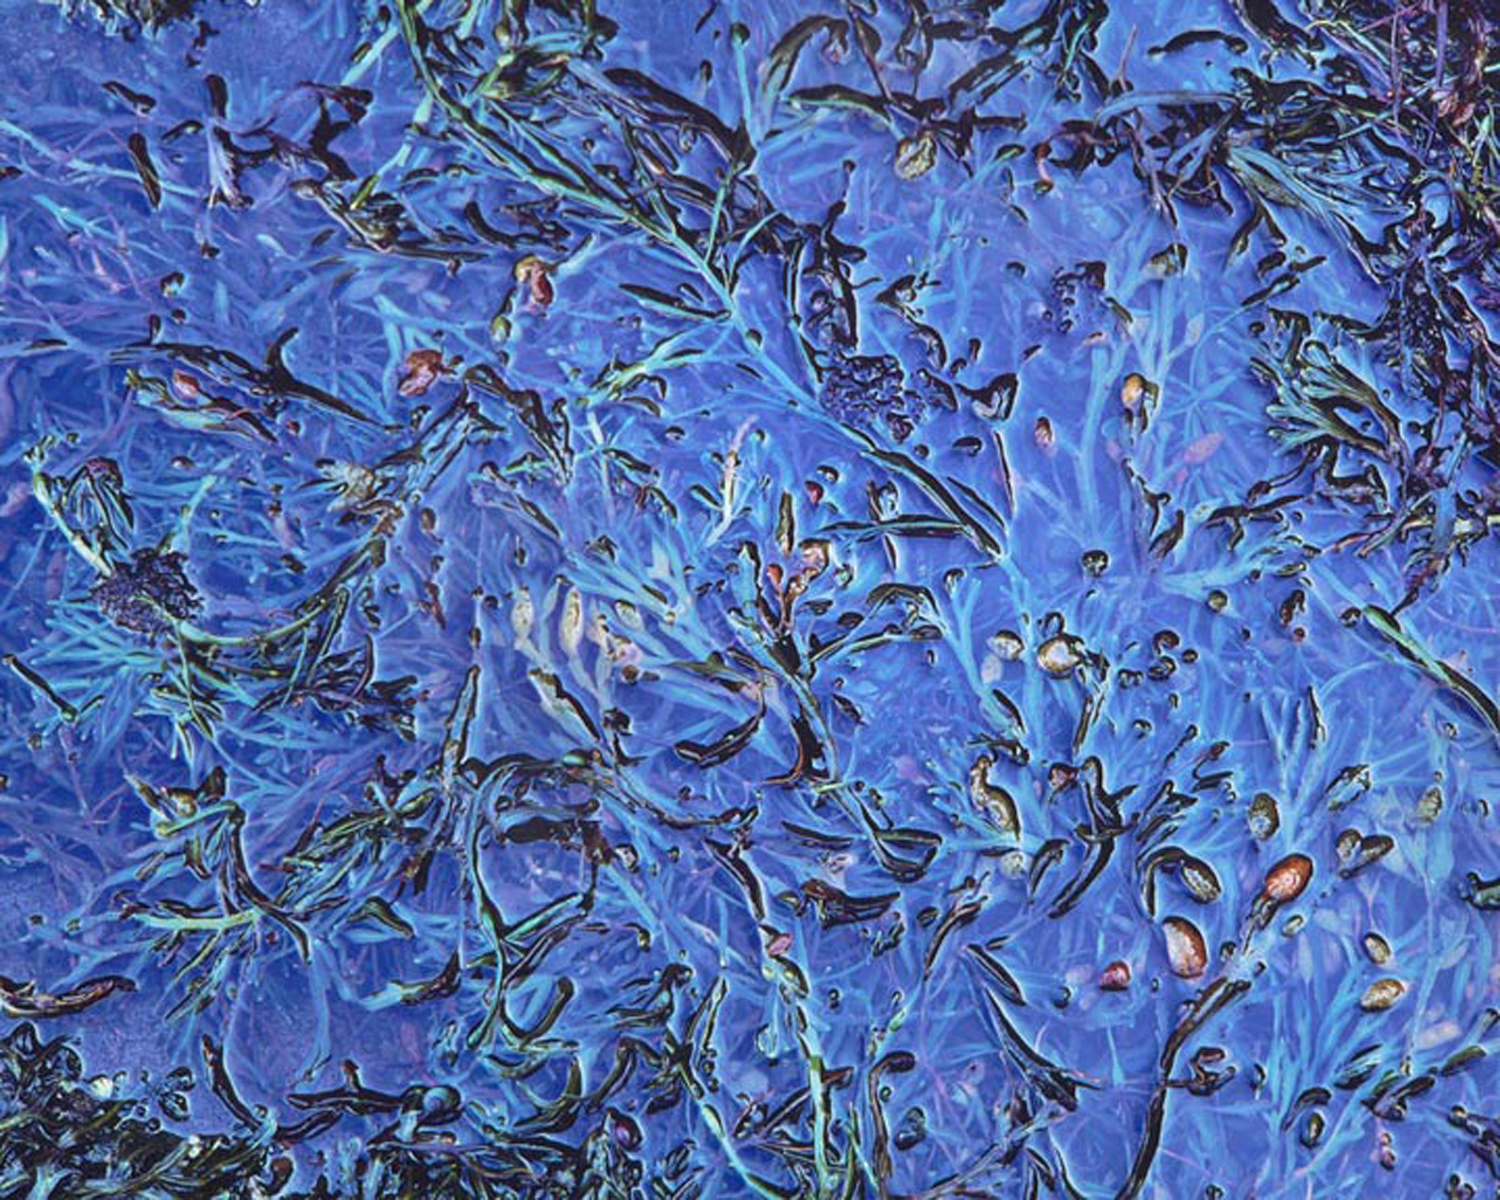 """Christopher Burkett """"Blue Melange,"""" Maine     Cibachrome Photograph     Available in 20"""" x 24"""", 30"""" x 40"""", and 40"""" x 50"""""""